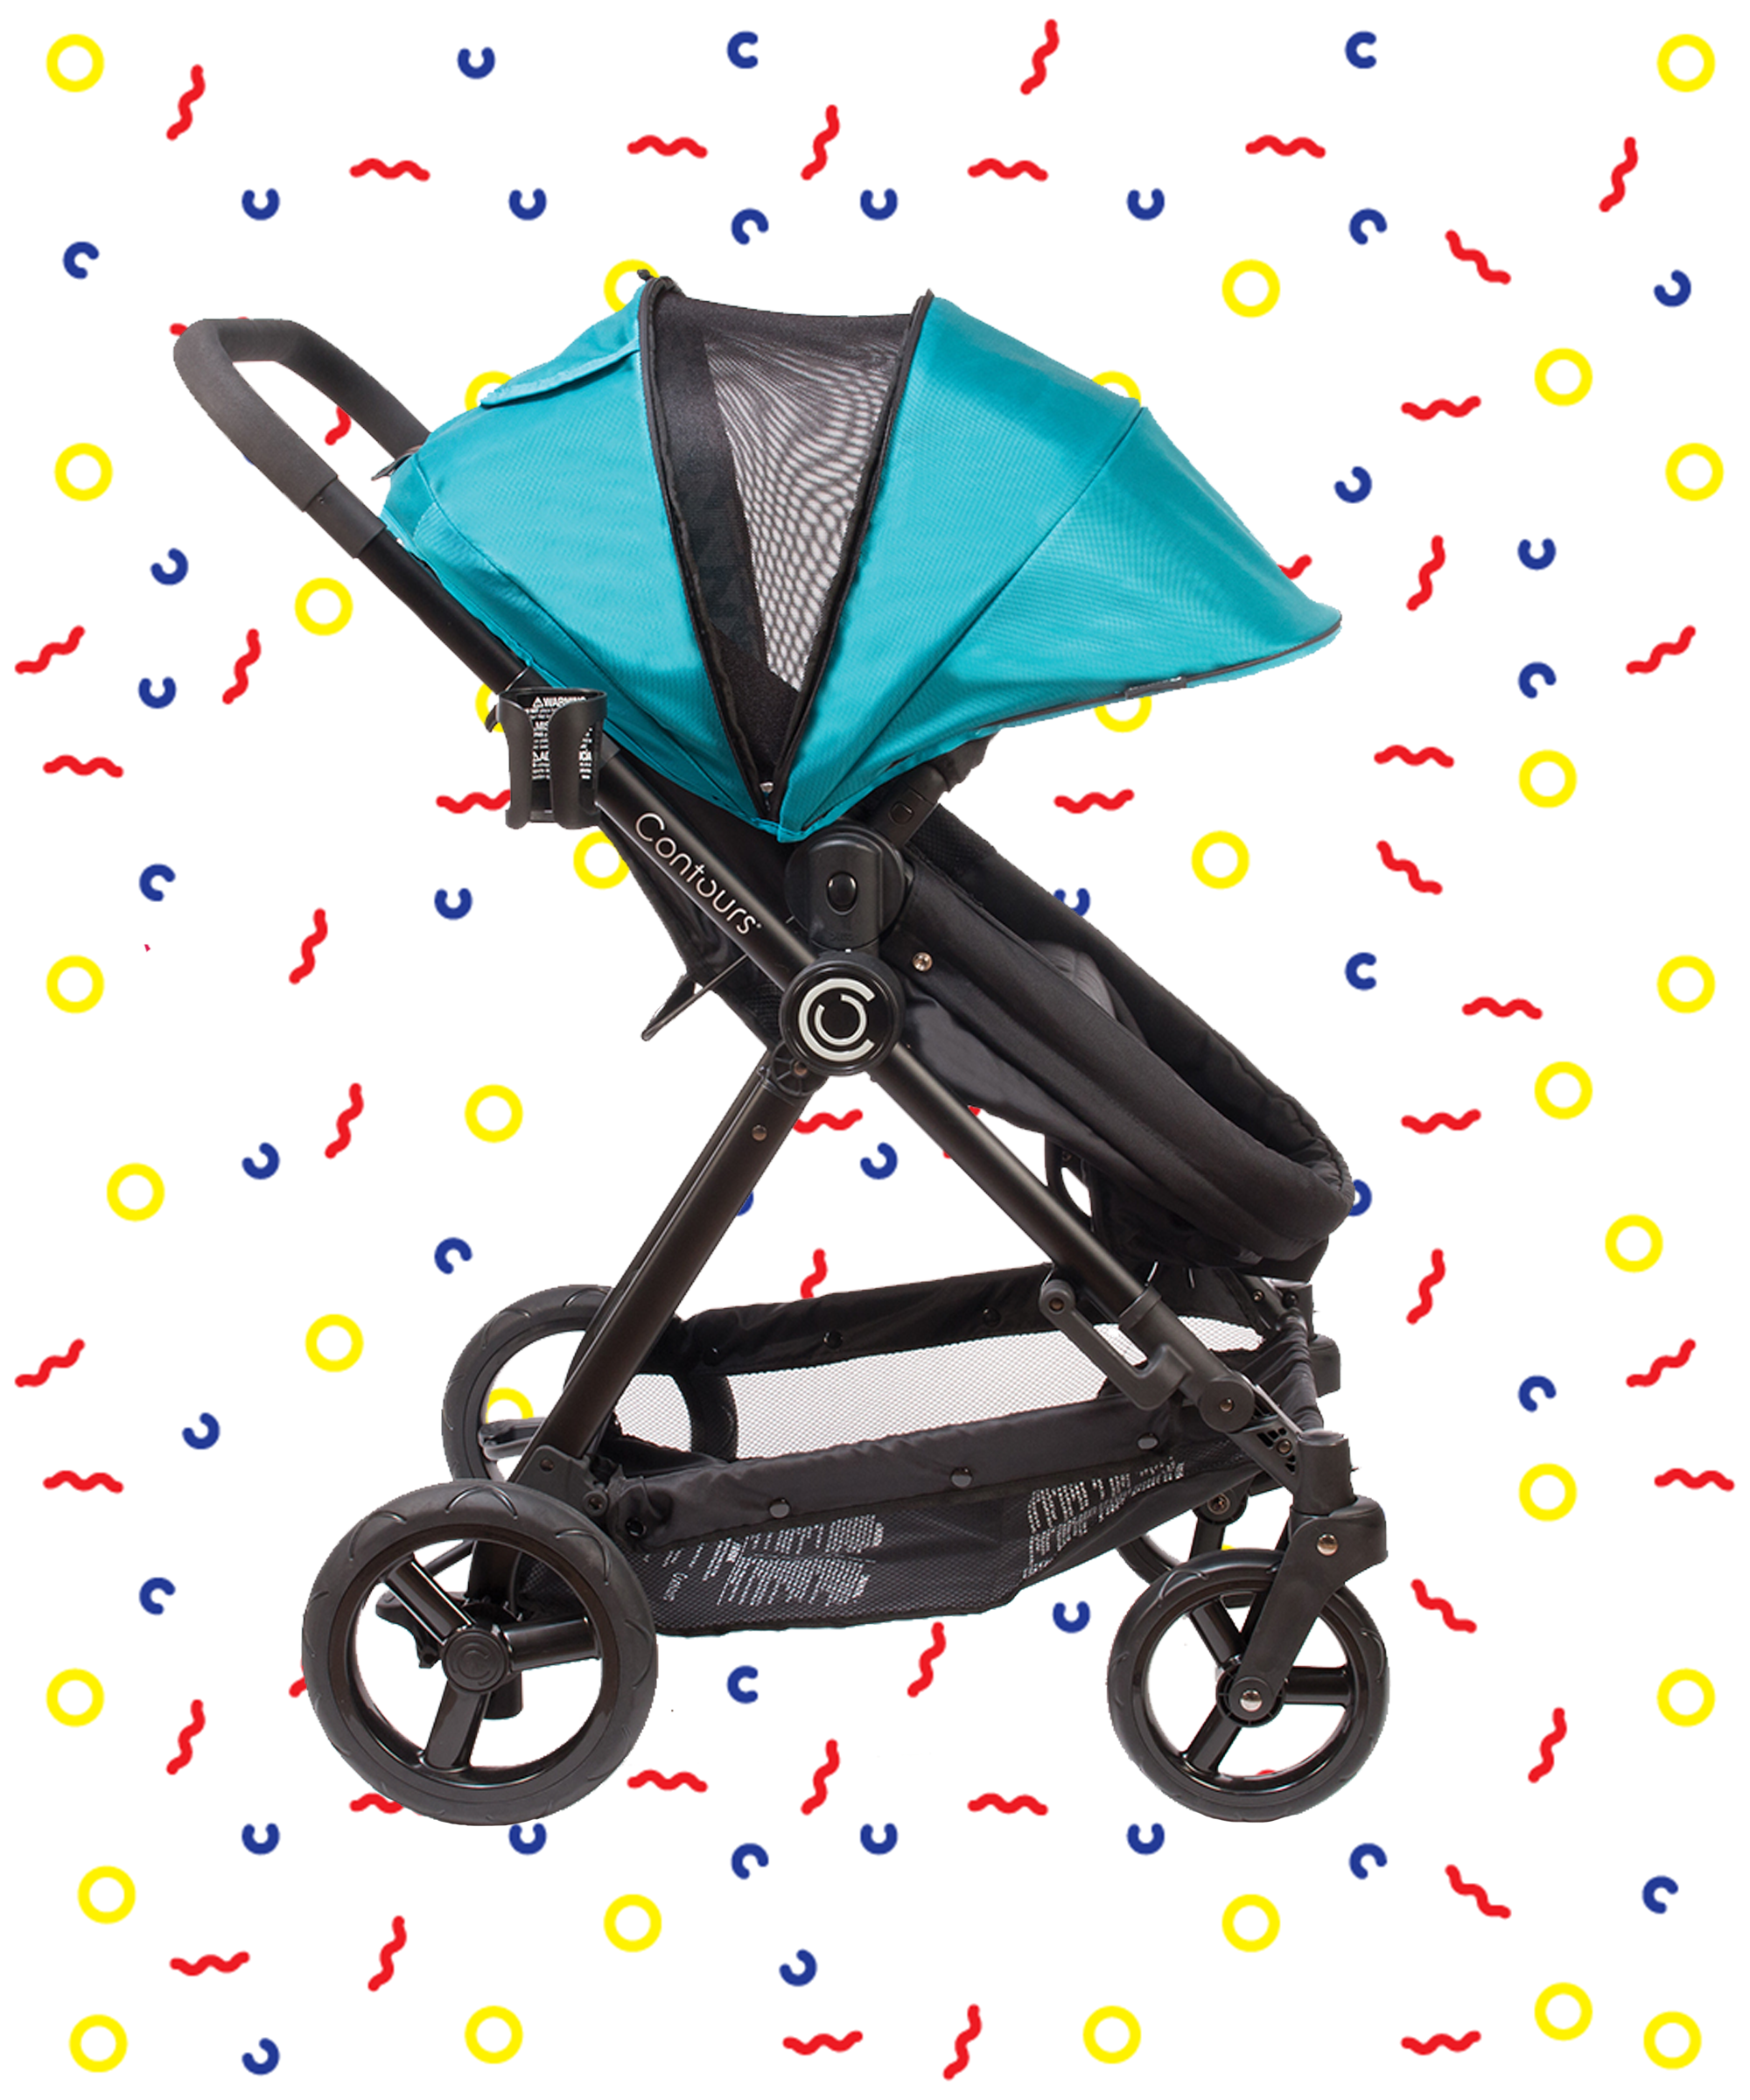 f6197d280c1 Adult-sized Stroller - Contours Baby Bliss